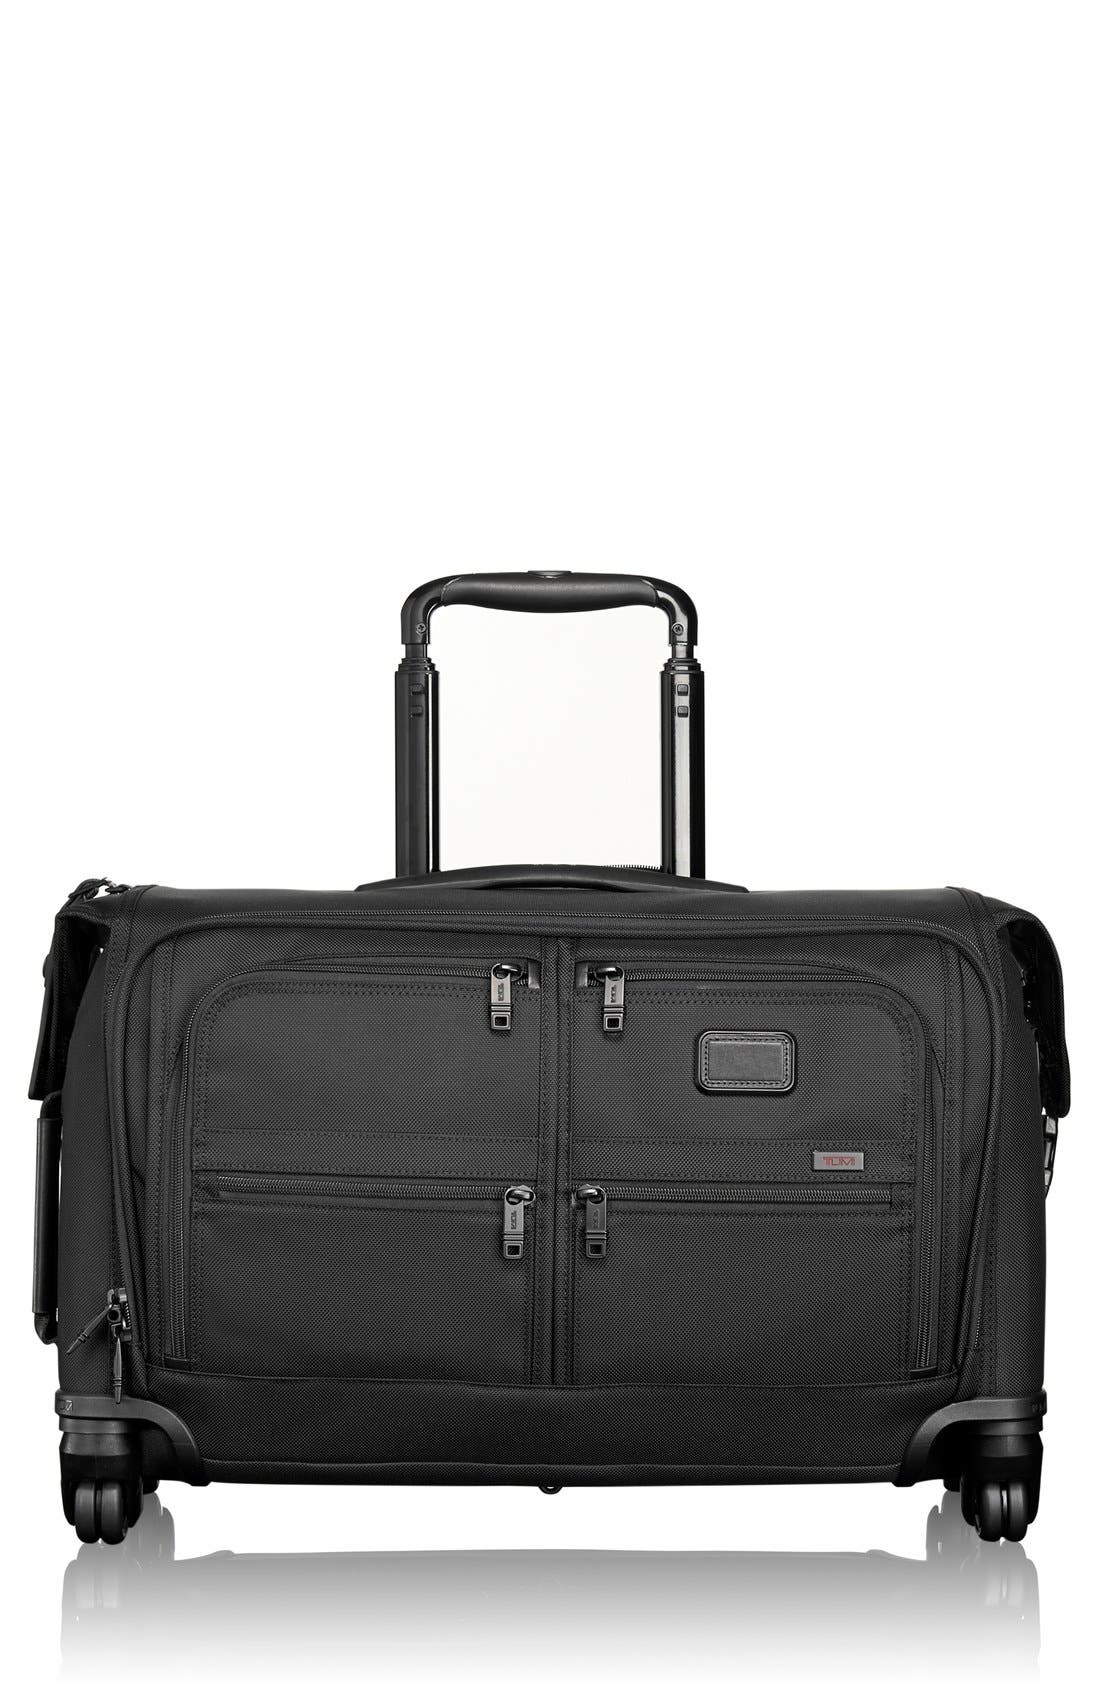 Alternate Image 1 Selected - Tumi 'Alpha 2' Wheeled Carry-On Garment Bag (22 Inch)